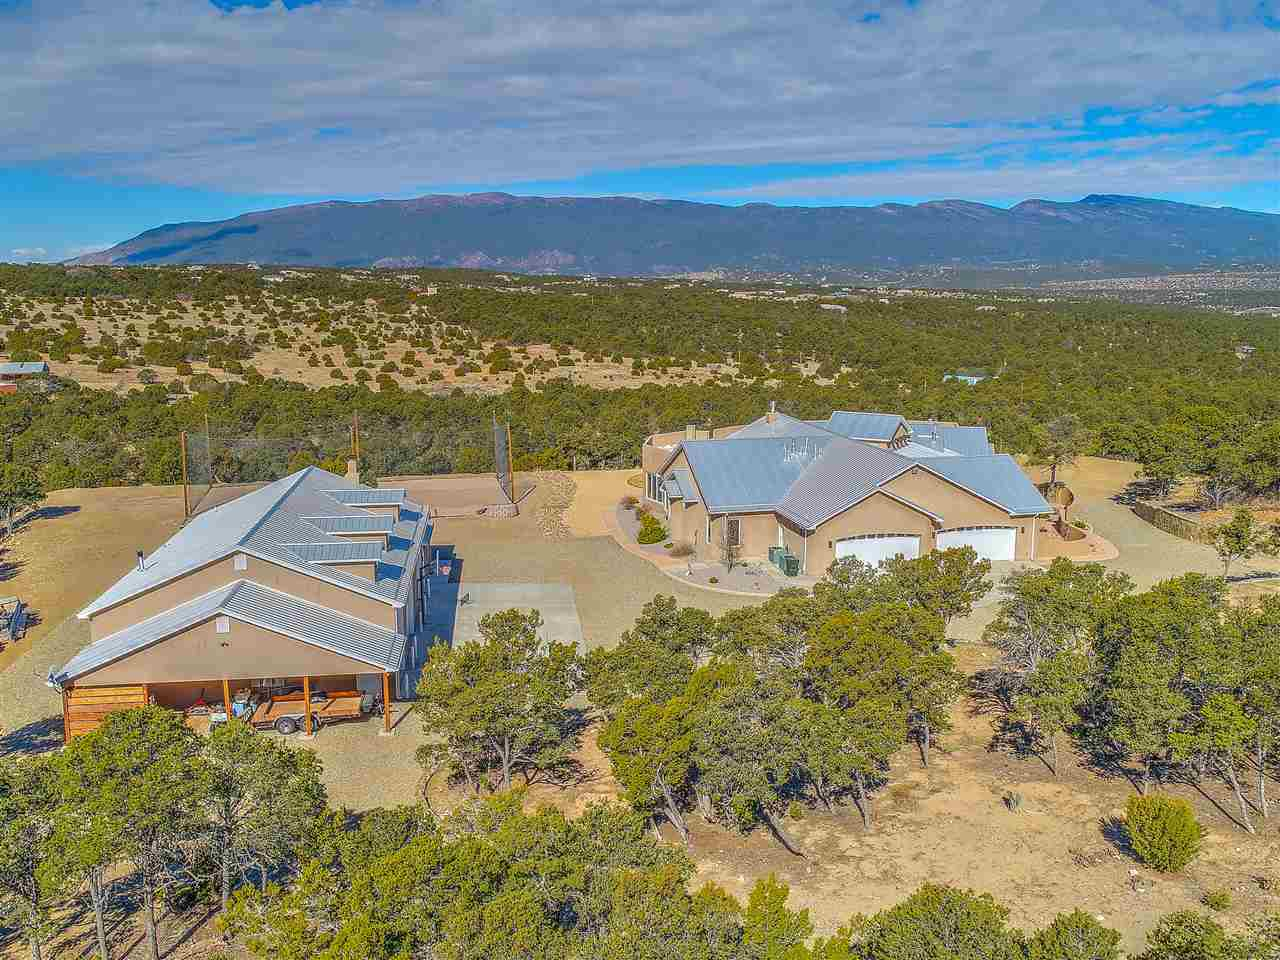 """Looking for Convenient, Quiet, and Green?  Would a truly spectacular view from every window interest you? 16 minutes to great shopping and theatres. 31 minutes to ABQ International Airport- really. This city-mountain retreat is the amazing gem you must see from a drone's perspective! Go now to the drone video link. A true Chef/Baker's Kitchen with Gourmet gas-top, oversized """"live-in"""" pantry room and top-of-the-Line cold food storage for superior meal-prep. Spectacular views while you cook and enjoy conversations in this modern great-room concept floorplan. Separate dining area provides for the more formal occasions or flex-use. Ambiance exudes throughout this high-end custom home with comfort features including on-demand fireplaces, radiant floor heating and refrigerated air conditioning. Ever heard of Barrett Jackson? This multiple garage estate is calling your name. Oversized auto toy-box with bathroom and conversation seating for your friends to enjoy.  Separate 4 car daily-driver coverage accesses the main home. RV garage stands adjacent to the flex-shop. Bringing some furry friends? Canine, Feline & Equines all welcome. Fully fenced with strategically placed pet entries and mountain pinon trees scattered throughout provide shade for Equine enjoyment. An impressive walled entry greets you with the convenience of electronic gated access. Bring the In-Laws! DETACHED, guest house is nicely finished and self-contained for extended visitors."""